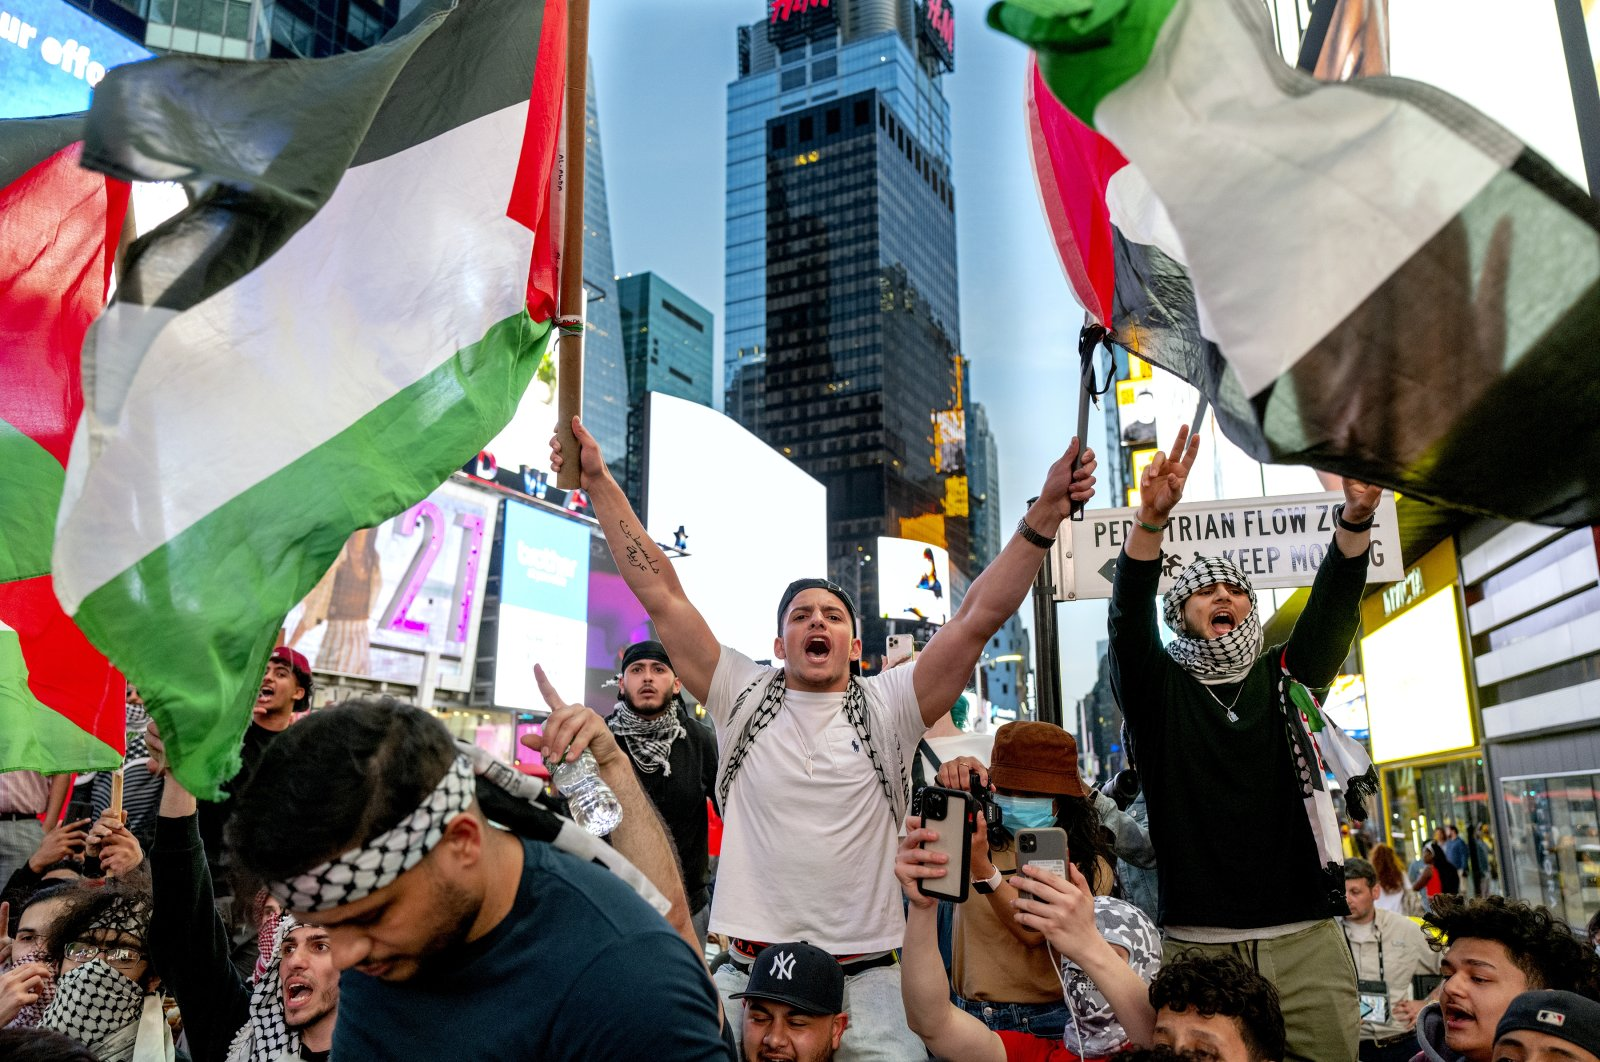 People during a demonstration against Israeli violence in occupied Palestinian territories, in the Times Square, New York City, New York, U.S., May 20, 2021. (AP Photo)